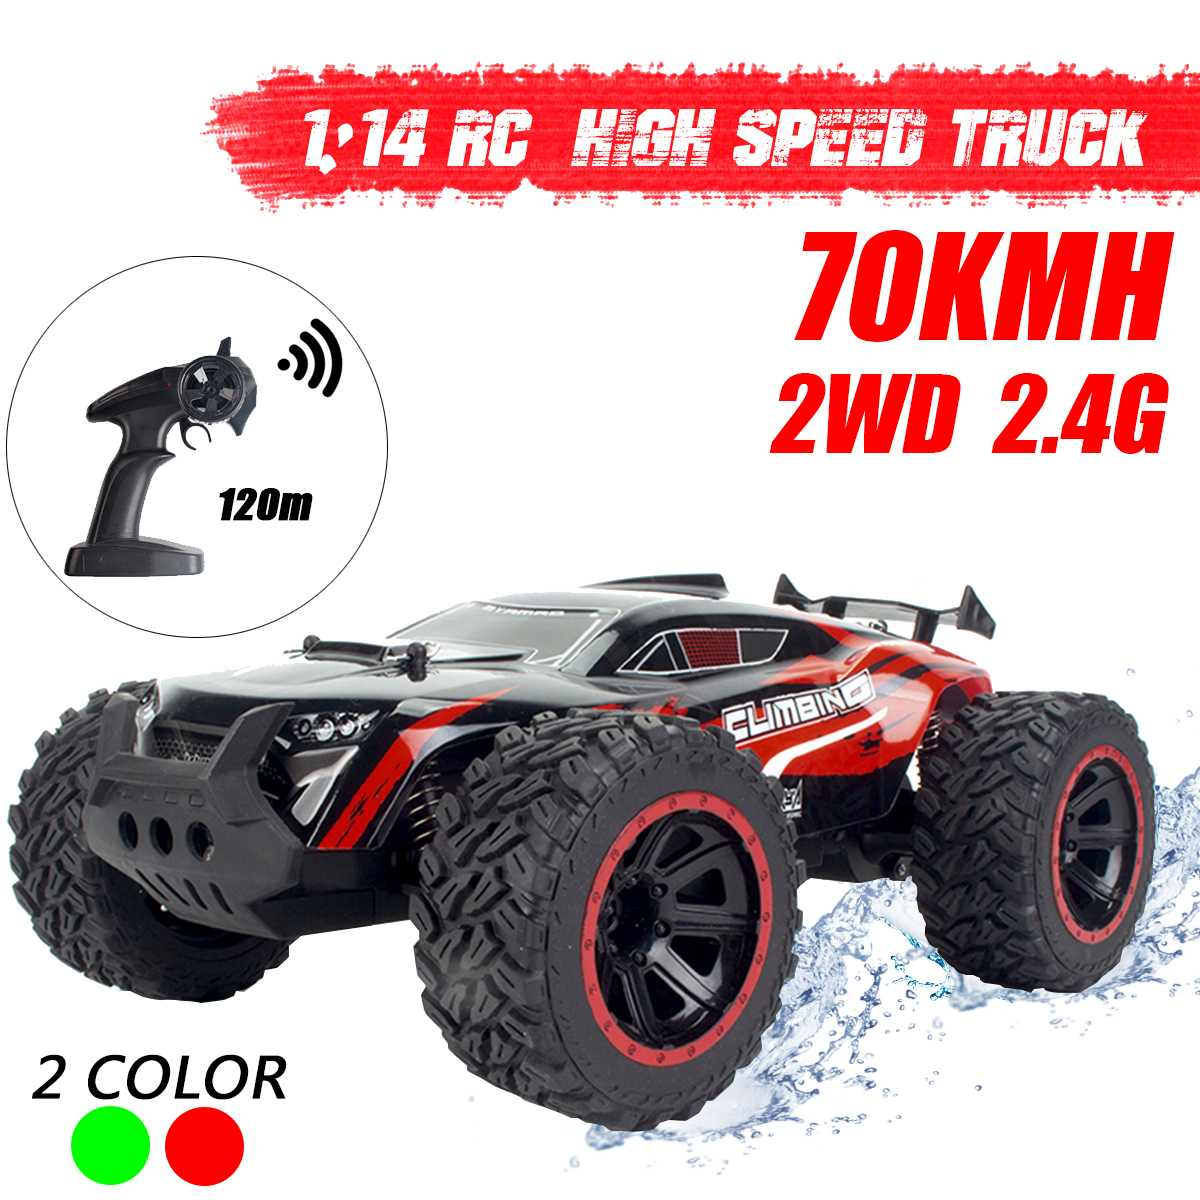 1:14 70Km/h 2WD RC Remote Control Off Road Racing Cars Vehicle 2.4Ghz Crawlers Electric Monster Truck RC